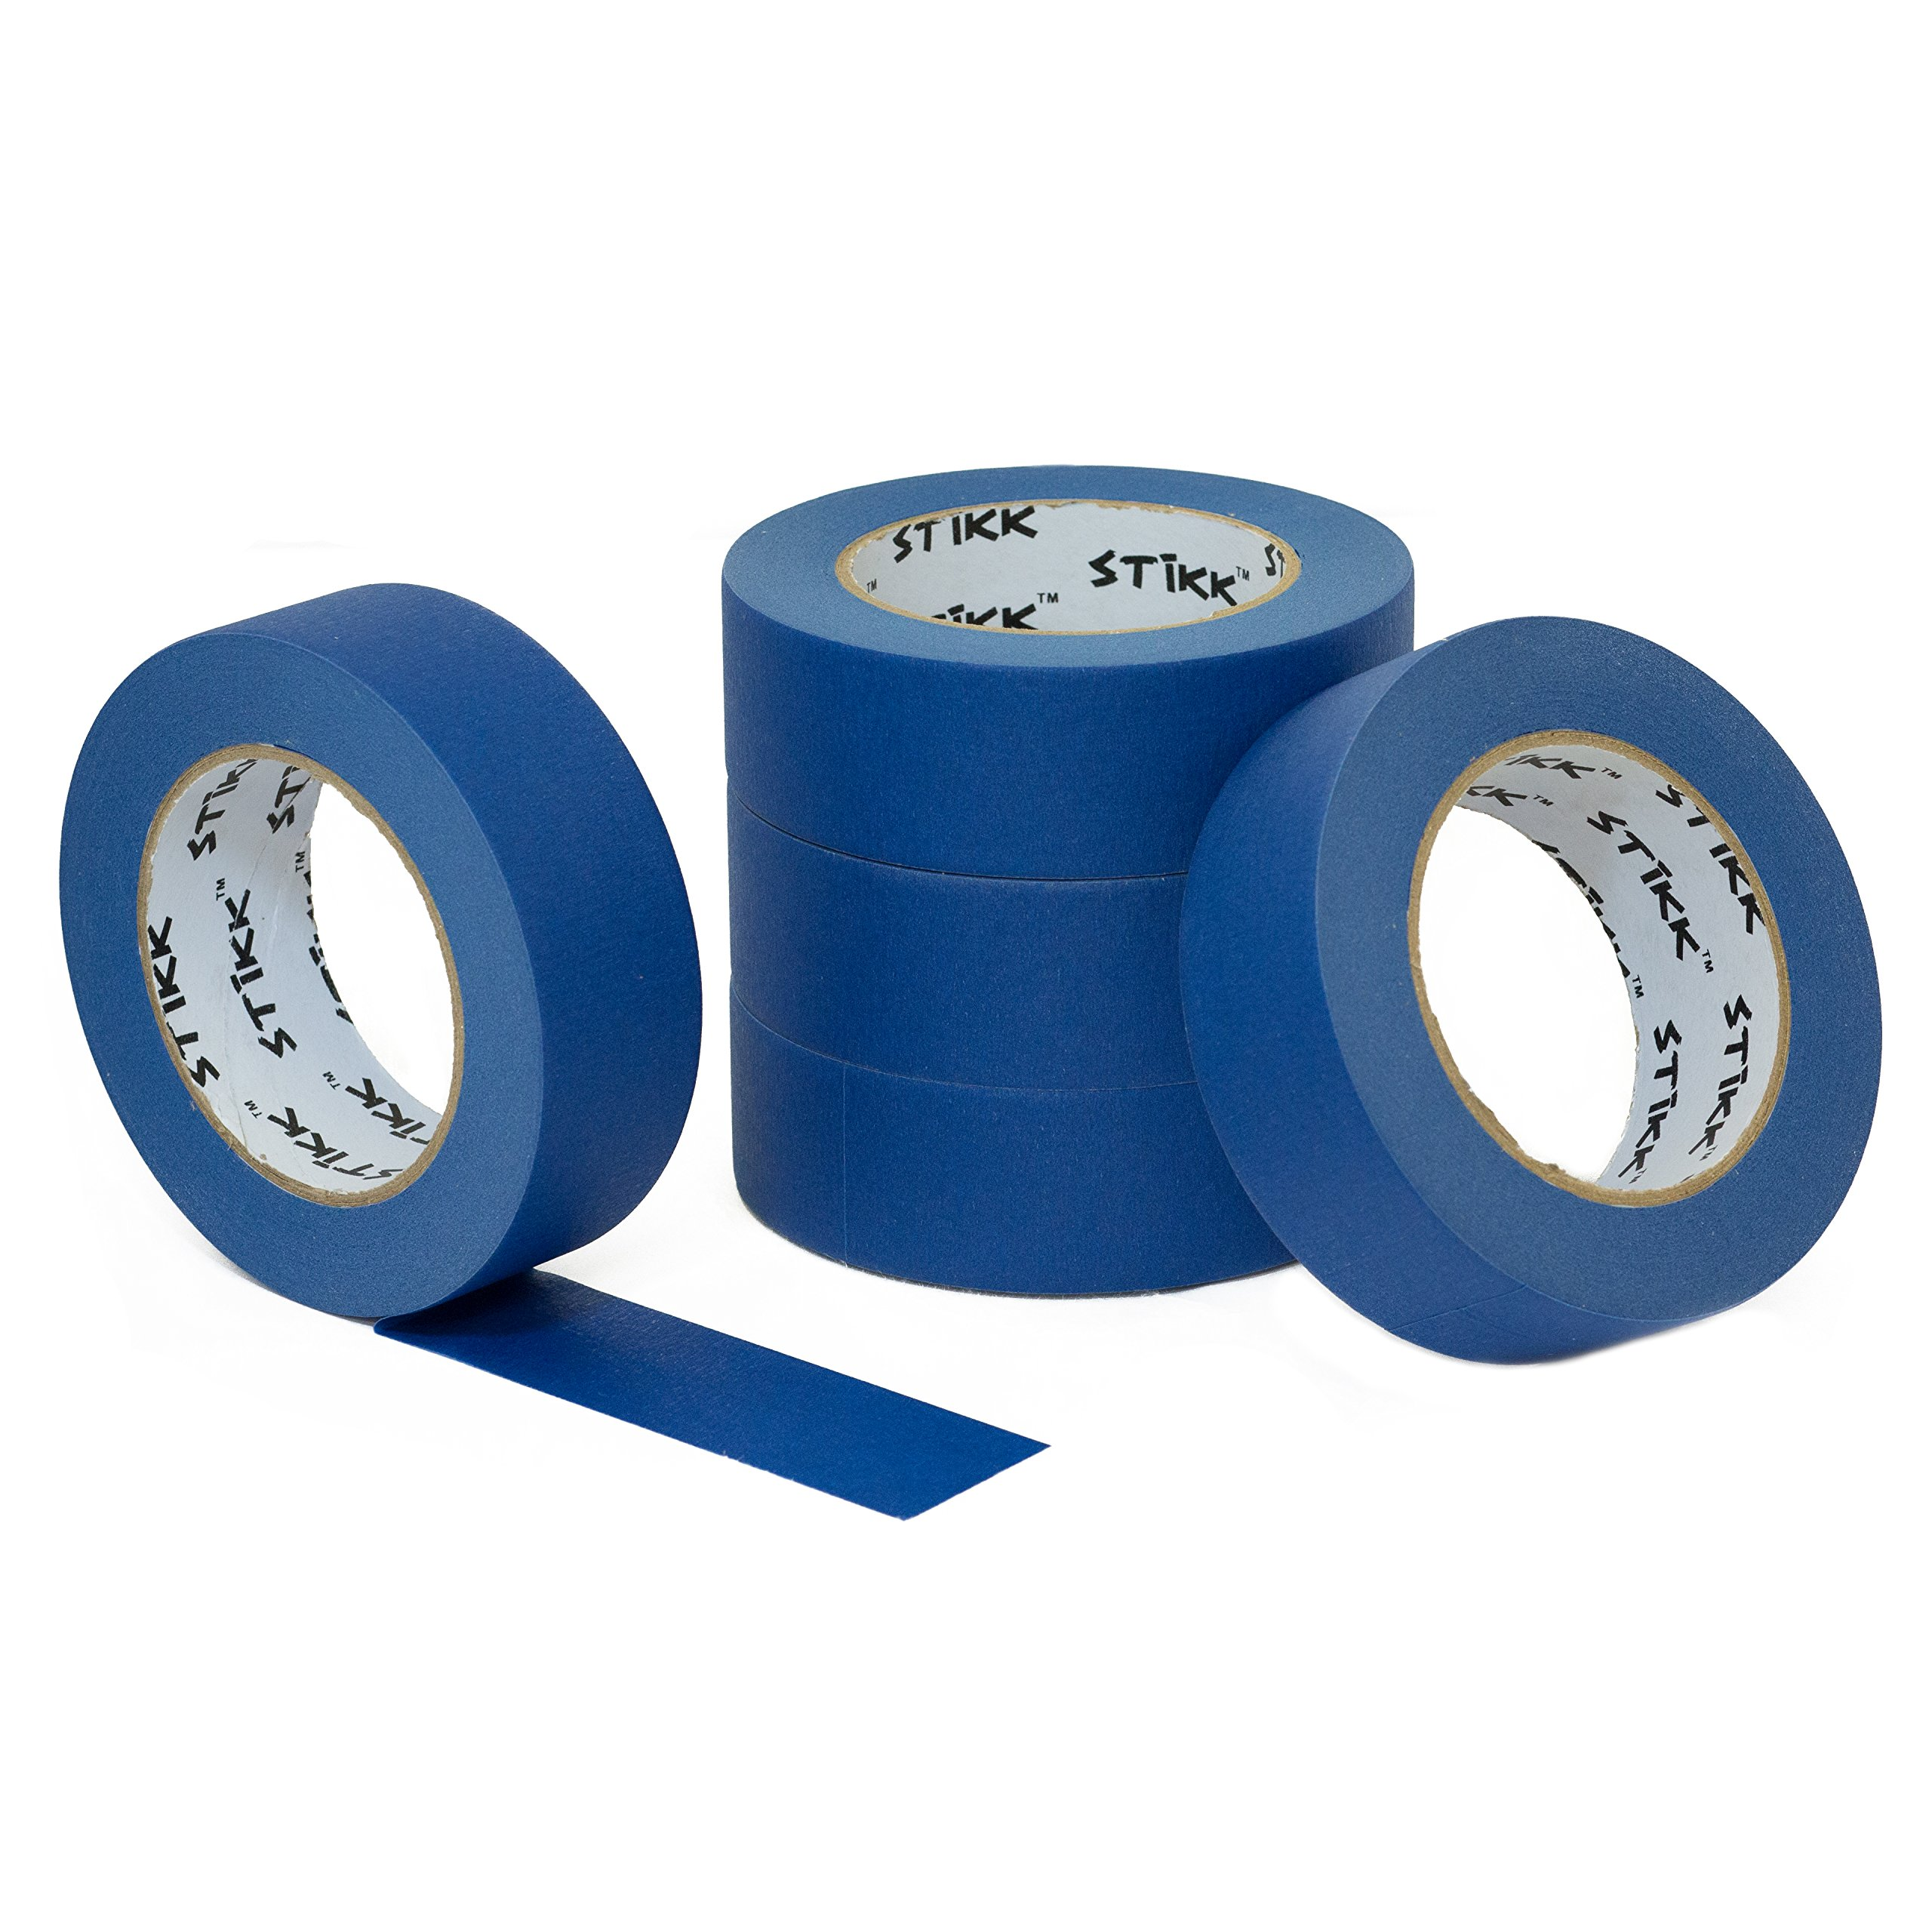 5 Pack 1.5'' x 60 yd STIKK Blue Painters Tape 14 Day Clean Release Trim Edge Finishing Masking Tape (1.44 IN 36MM)